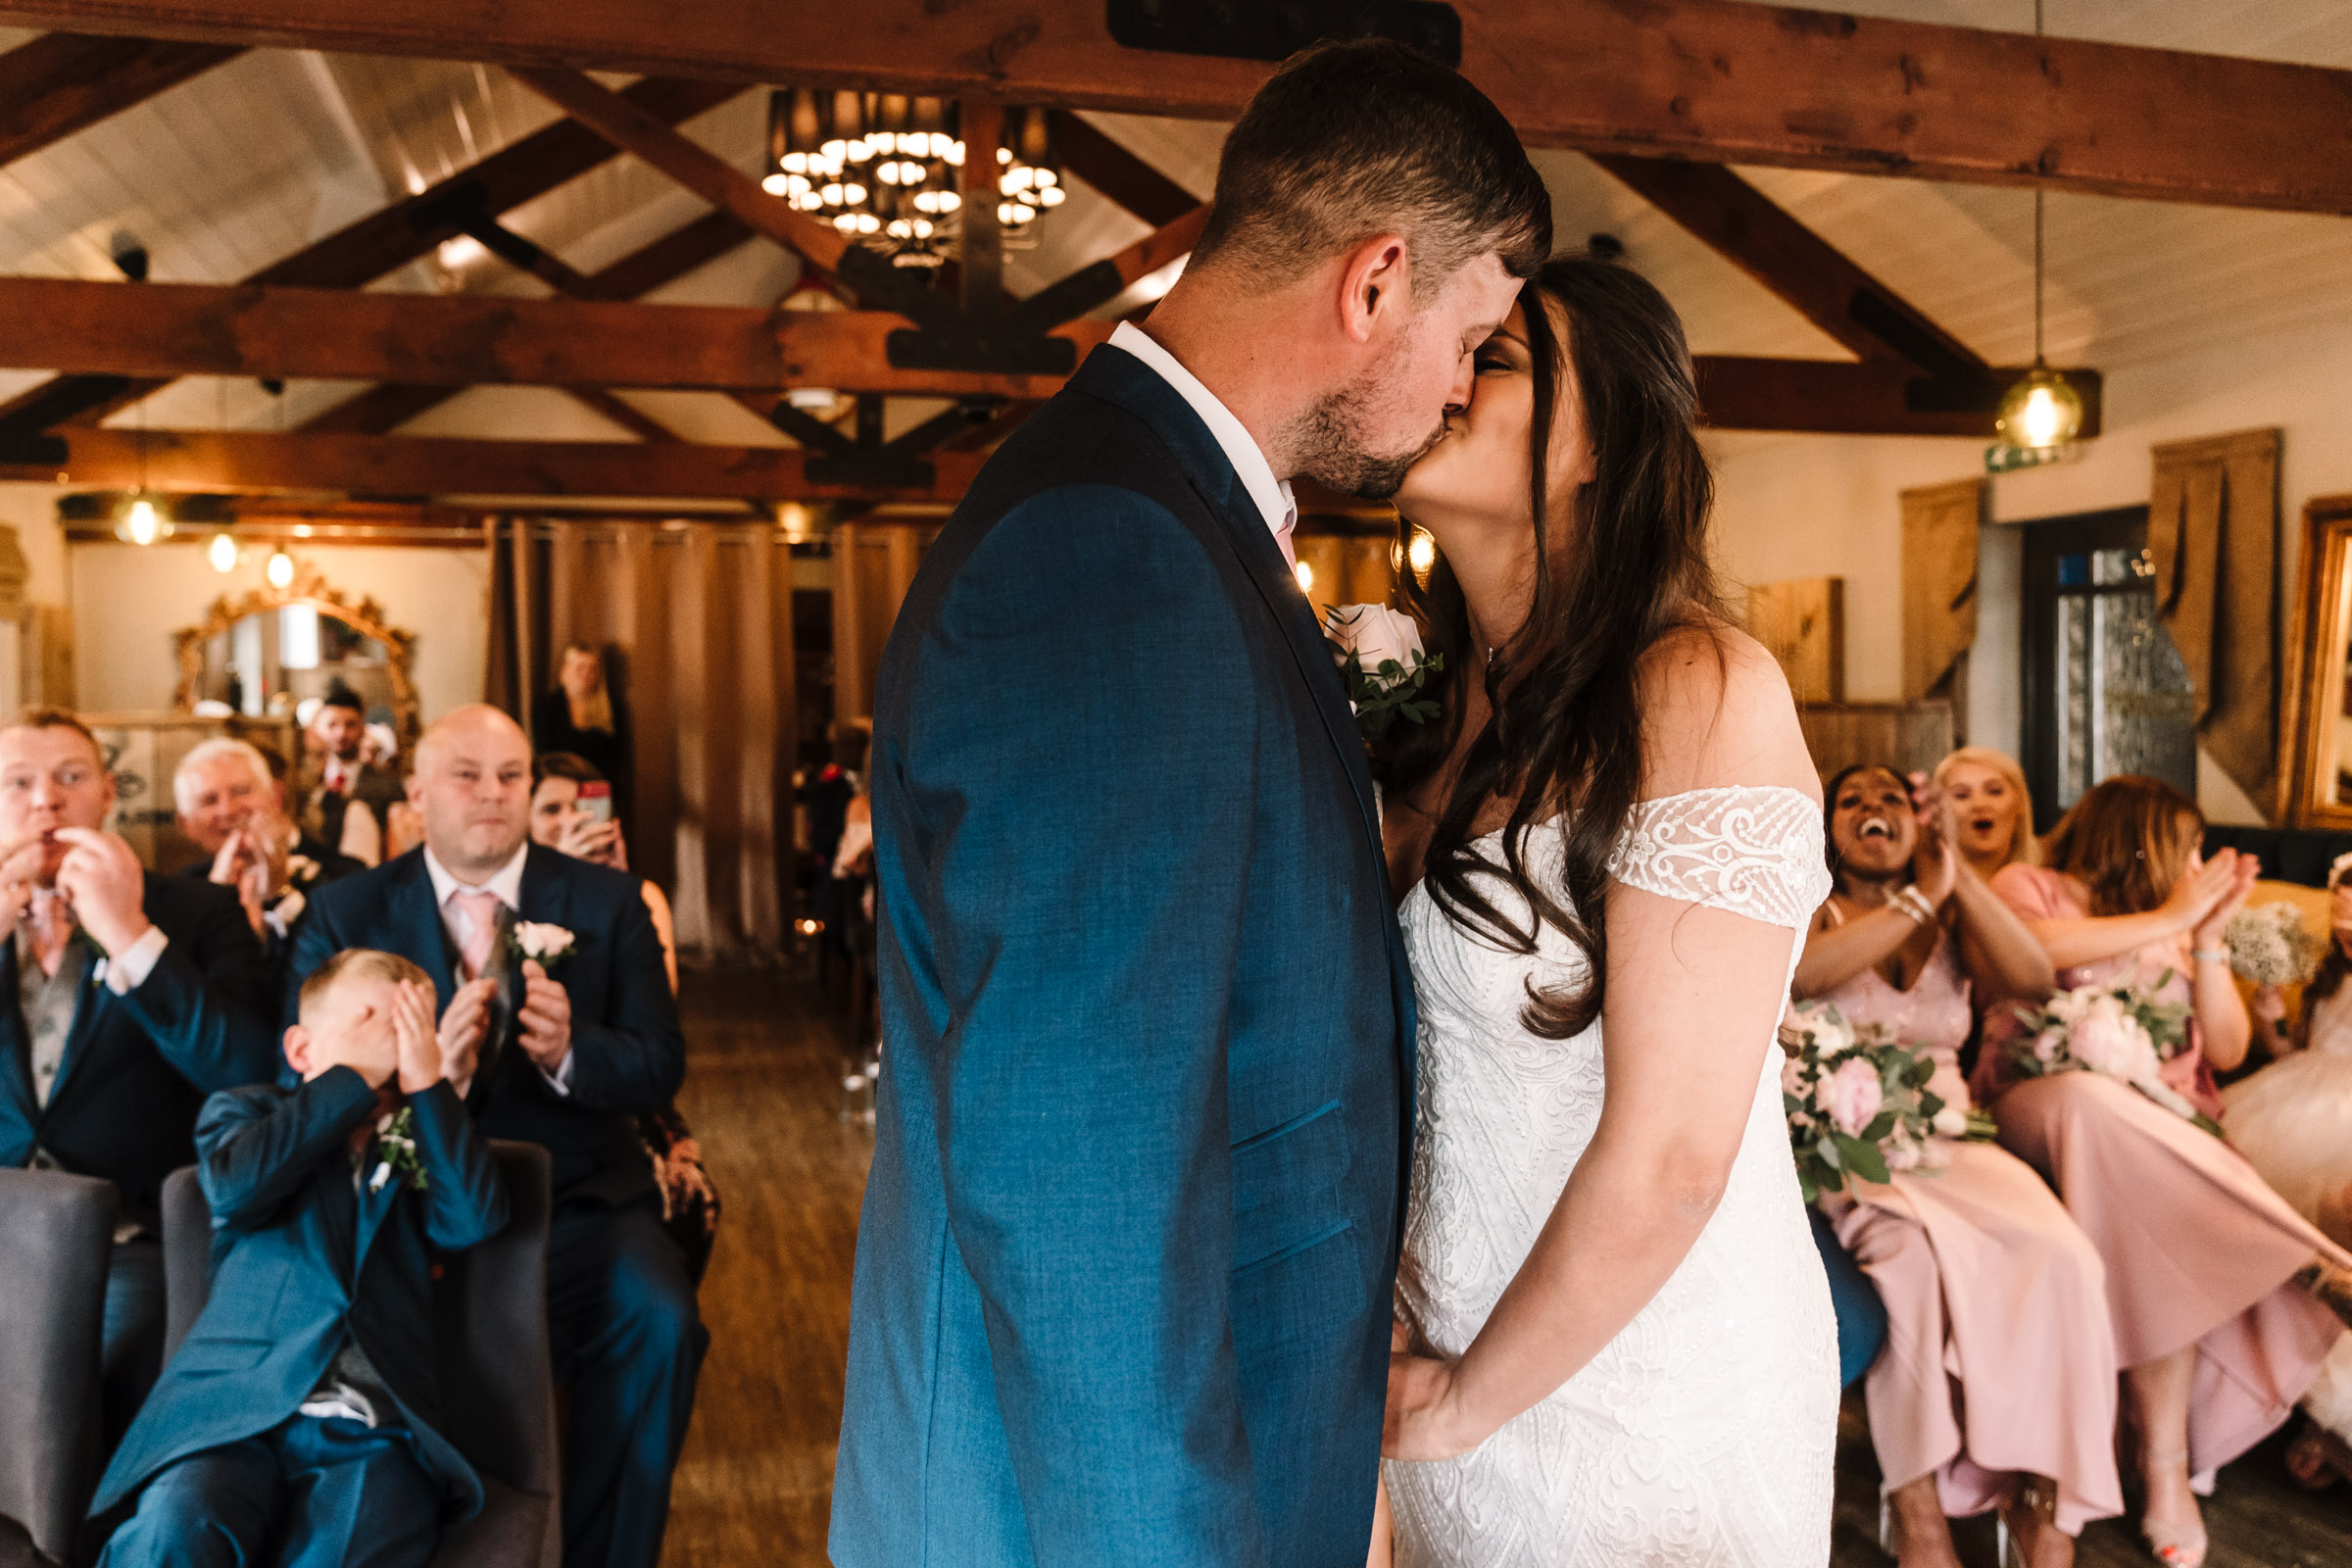 Bride and groom first kiss during wedding ceremony, royal arms hotel wedding